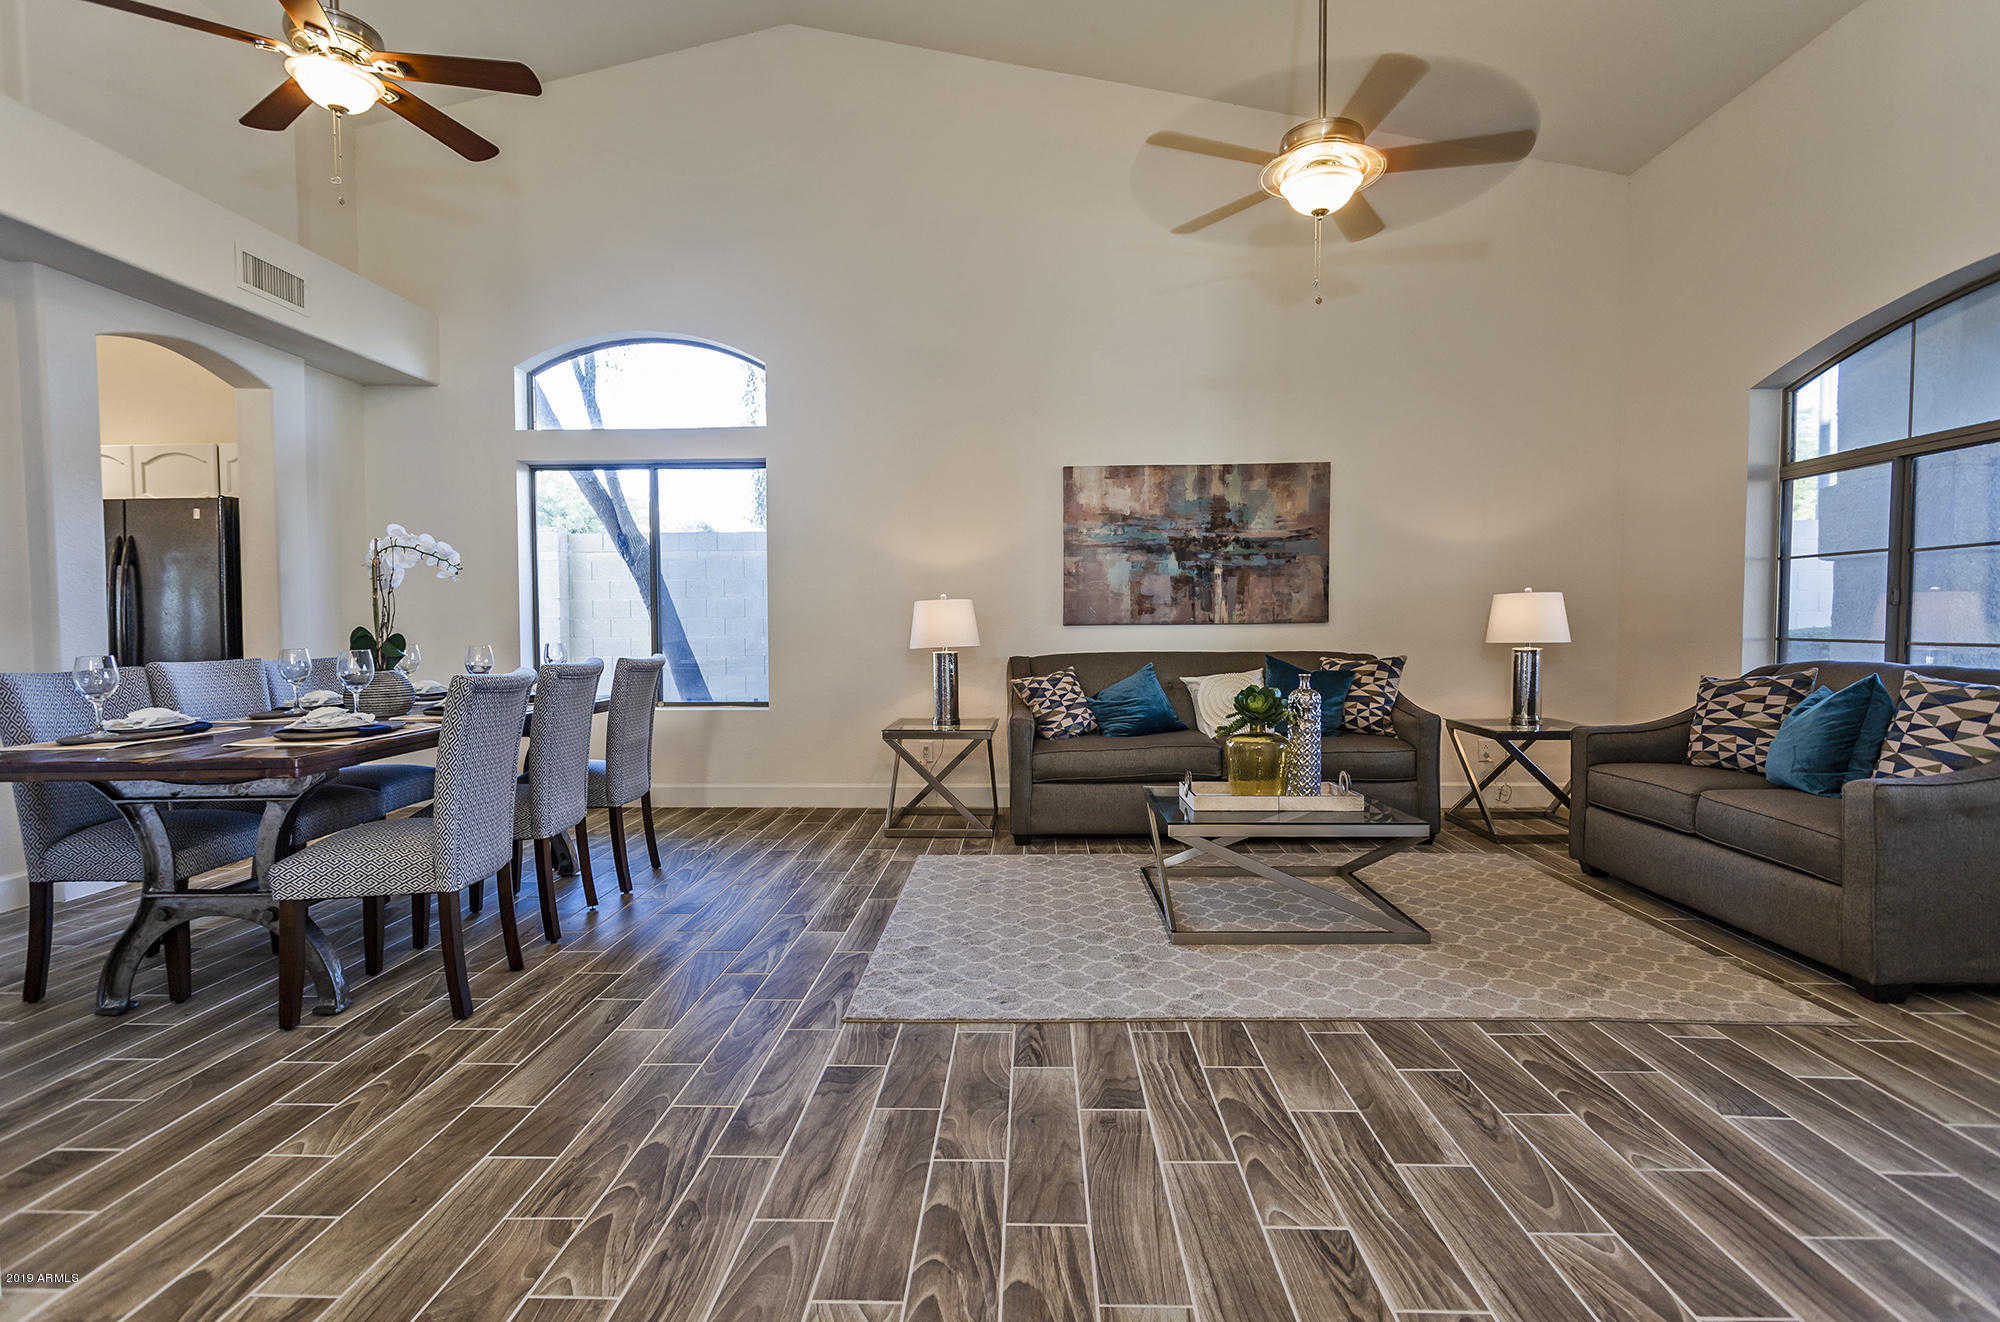 $328,000 - 4Br/3Ba - Home for Sale in Shadow View Ranch Lot 1-46 Tr A-c, Glendale